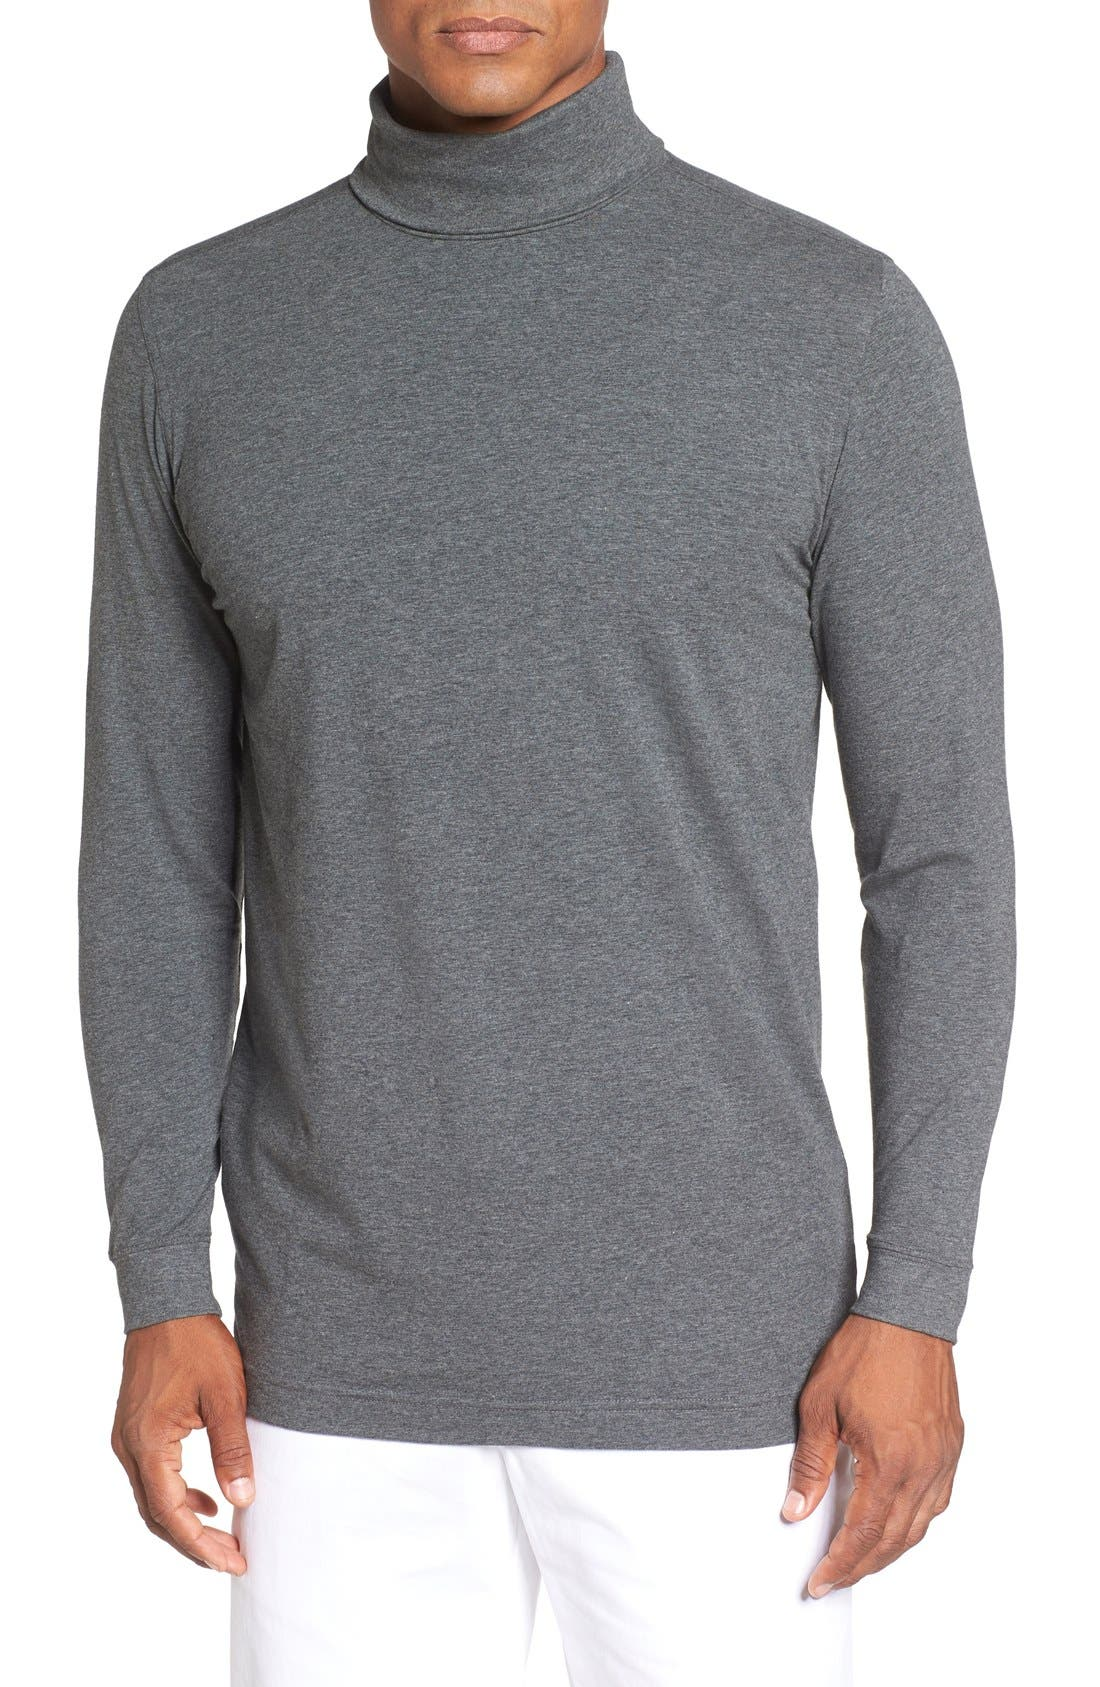 Bobby Jones Long Sleeve Turtleneck T-Shirt